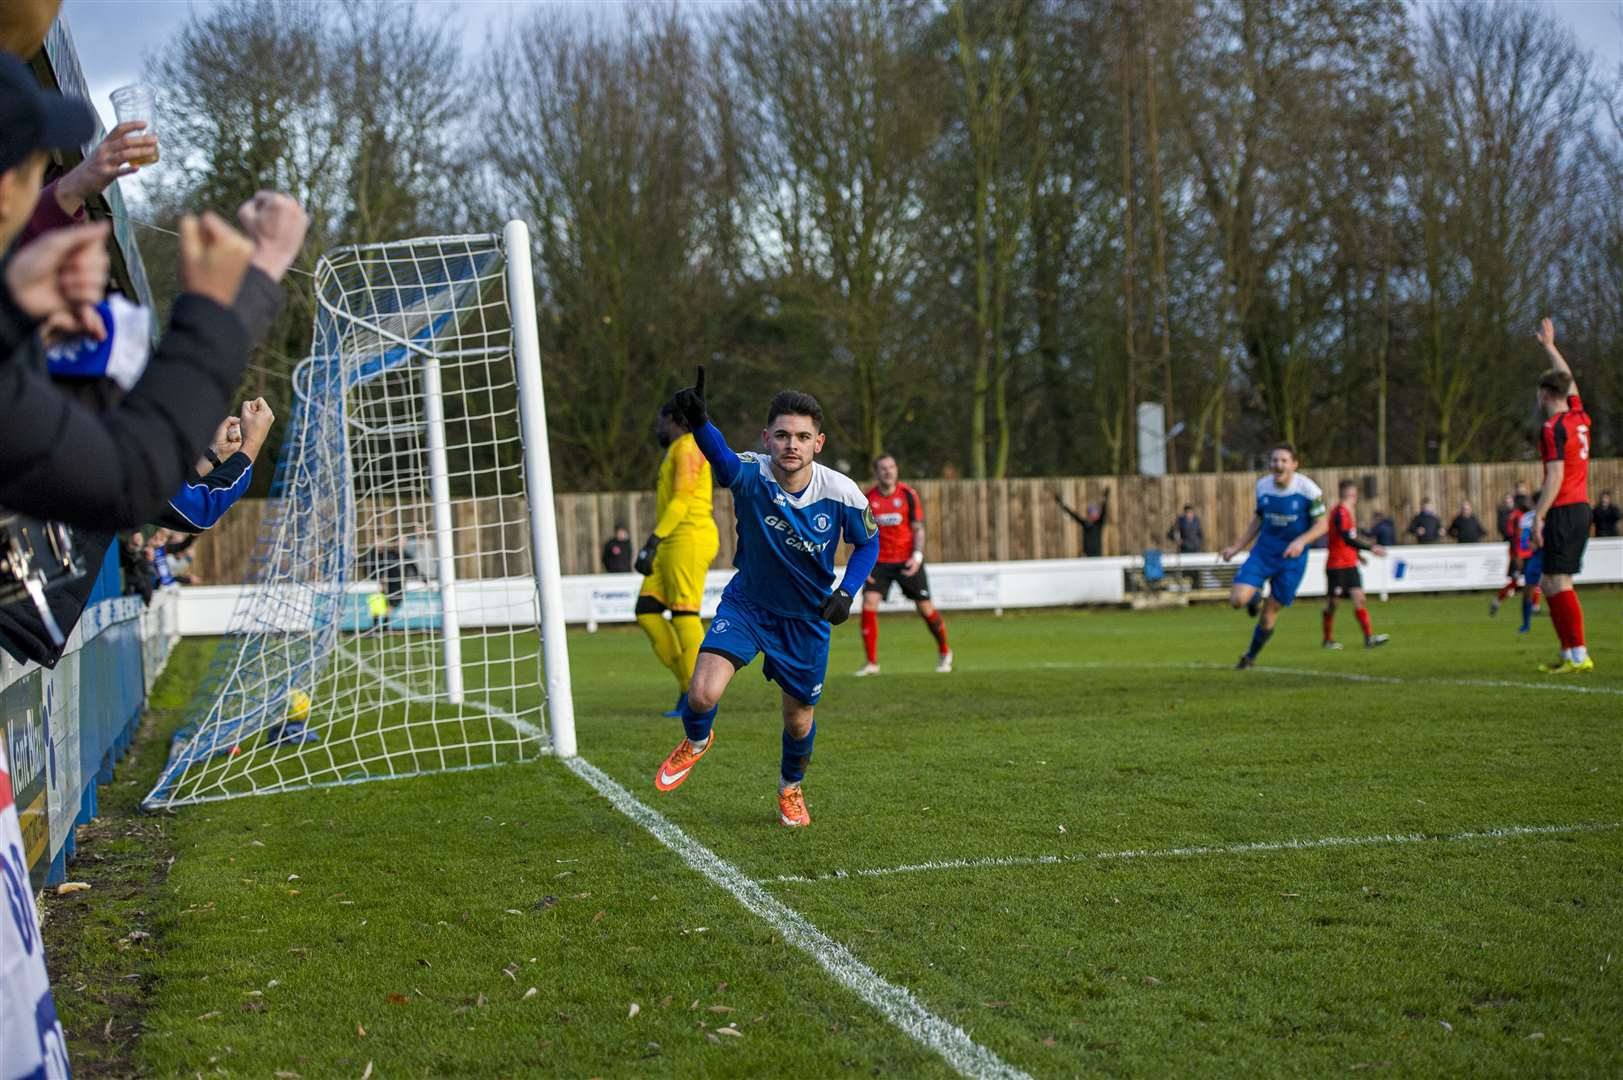 Football - Bury Town v Coggeshall - Cemal Ramadan celebrates his goal for Bury Town- Picture - Neil Dady. (22981711)